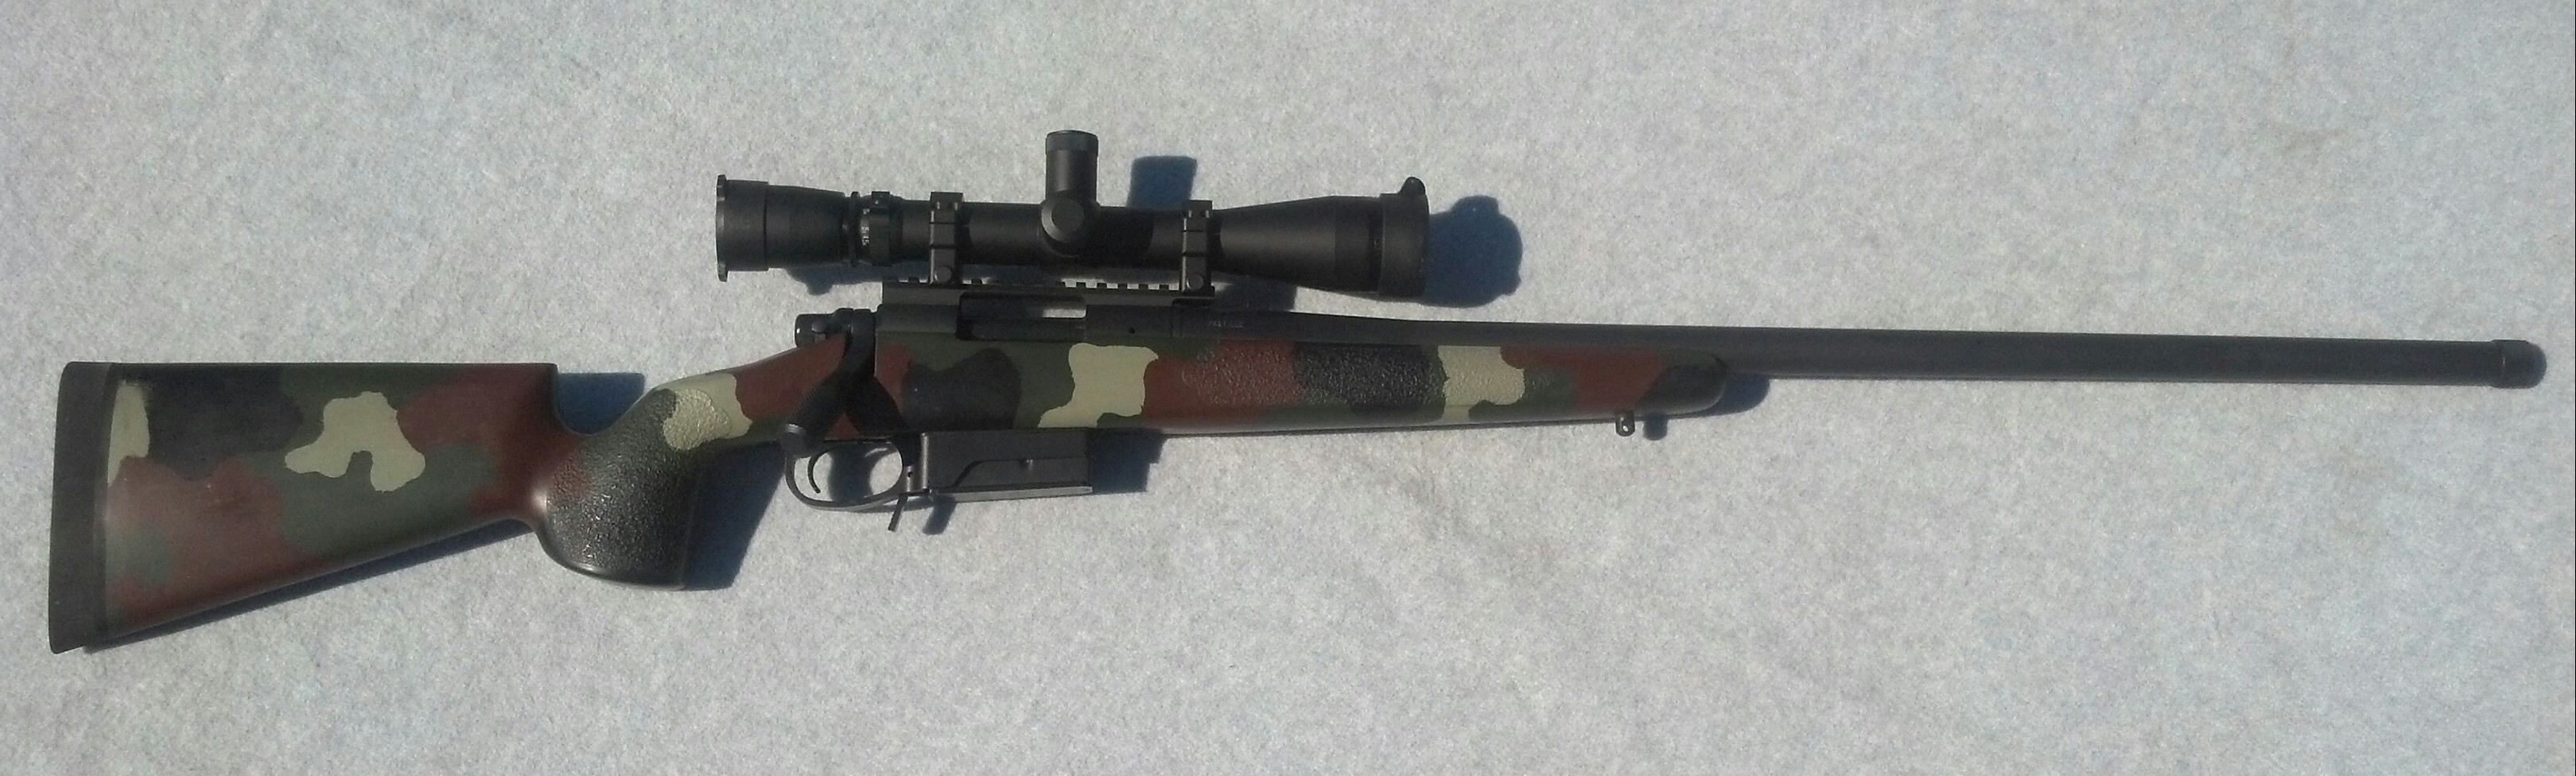 game_scout_rifle